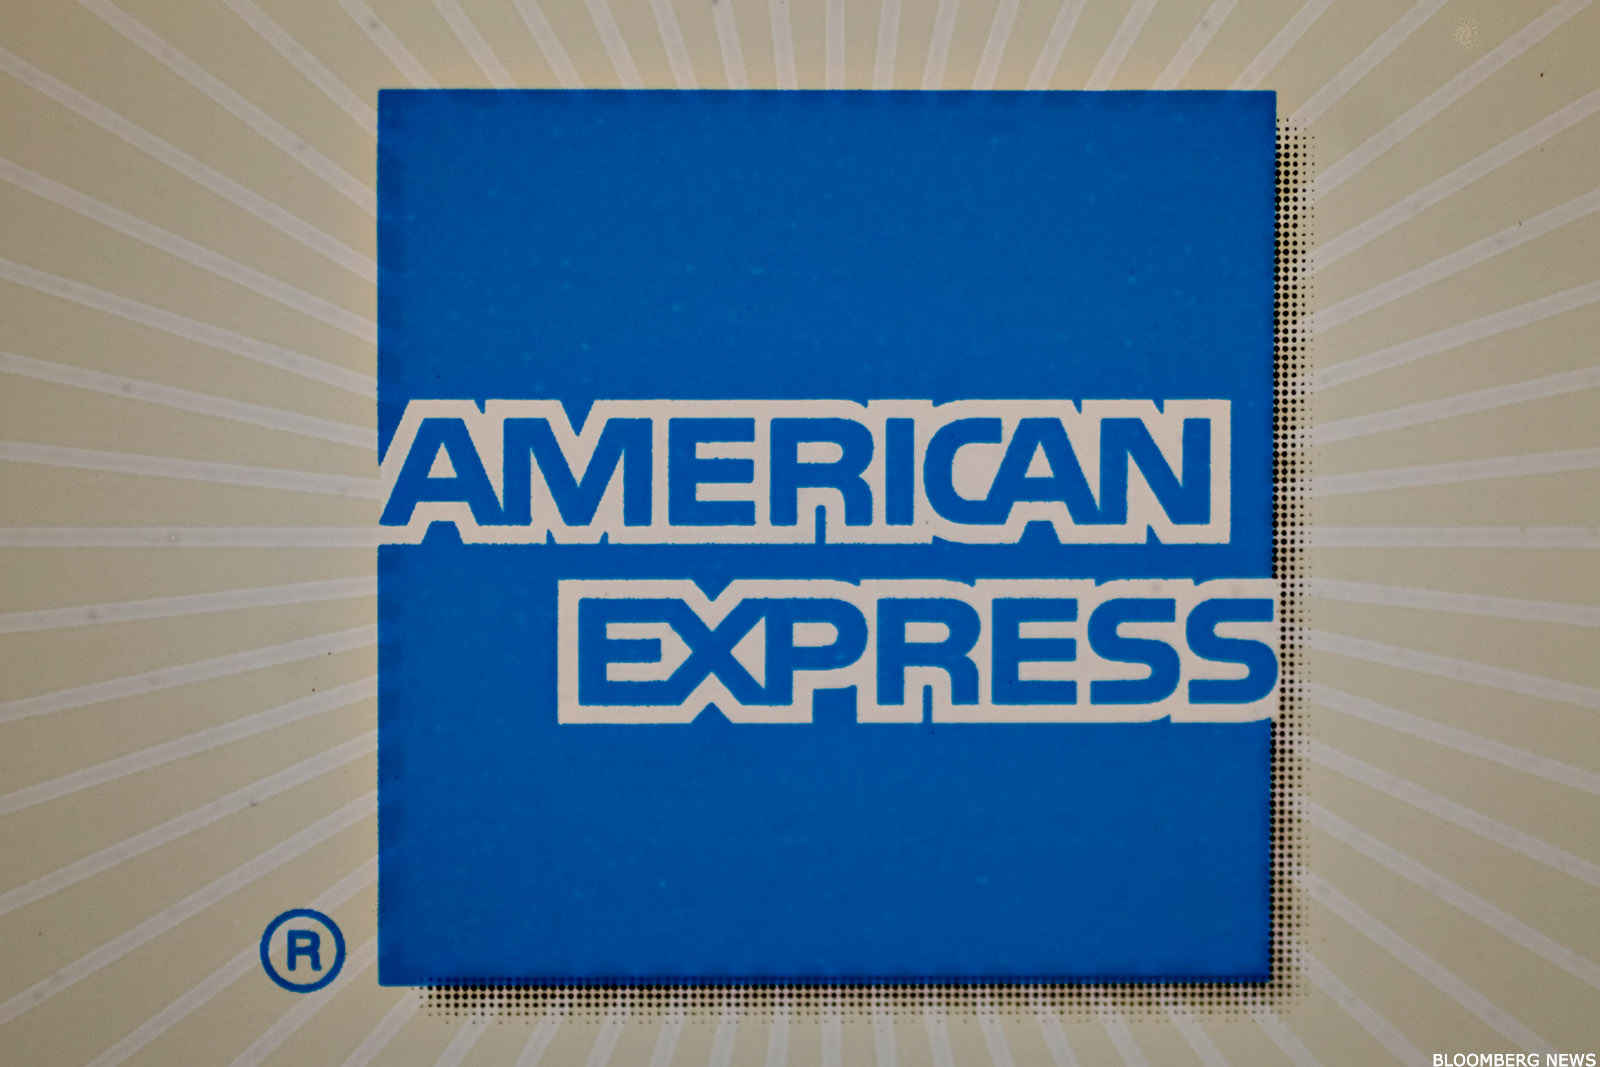 American Express Beats on Earnings, Stock Rises - TheStreet